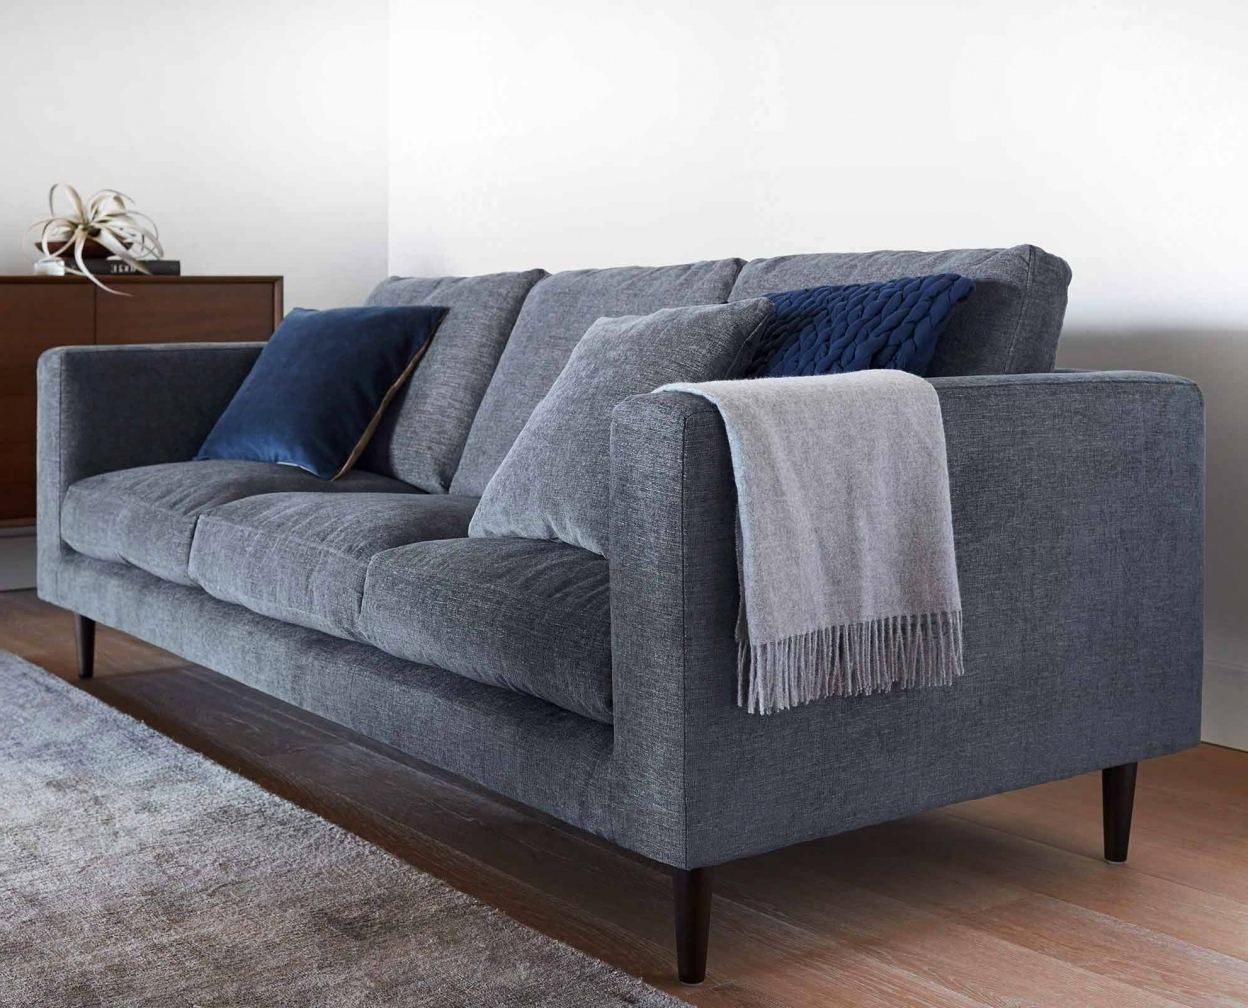 Dania Sectional Sofas For Latest Modern Sectional Sofas Cheap Capital Dania The Hagen Sofa Offers (View 3 of 20)